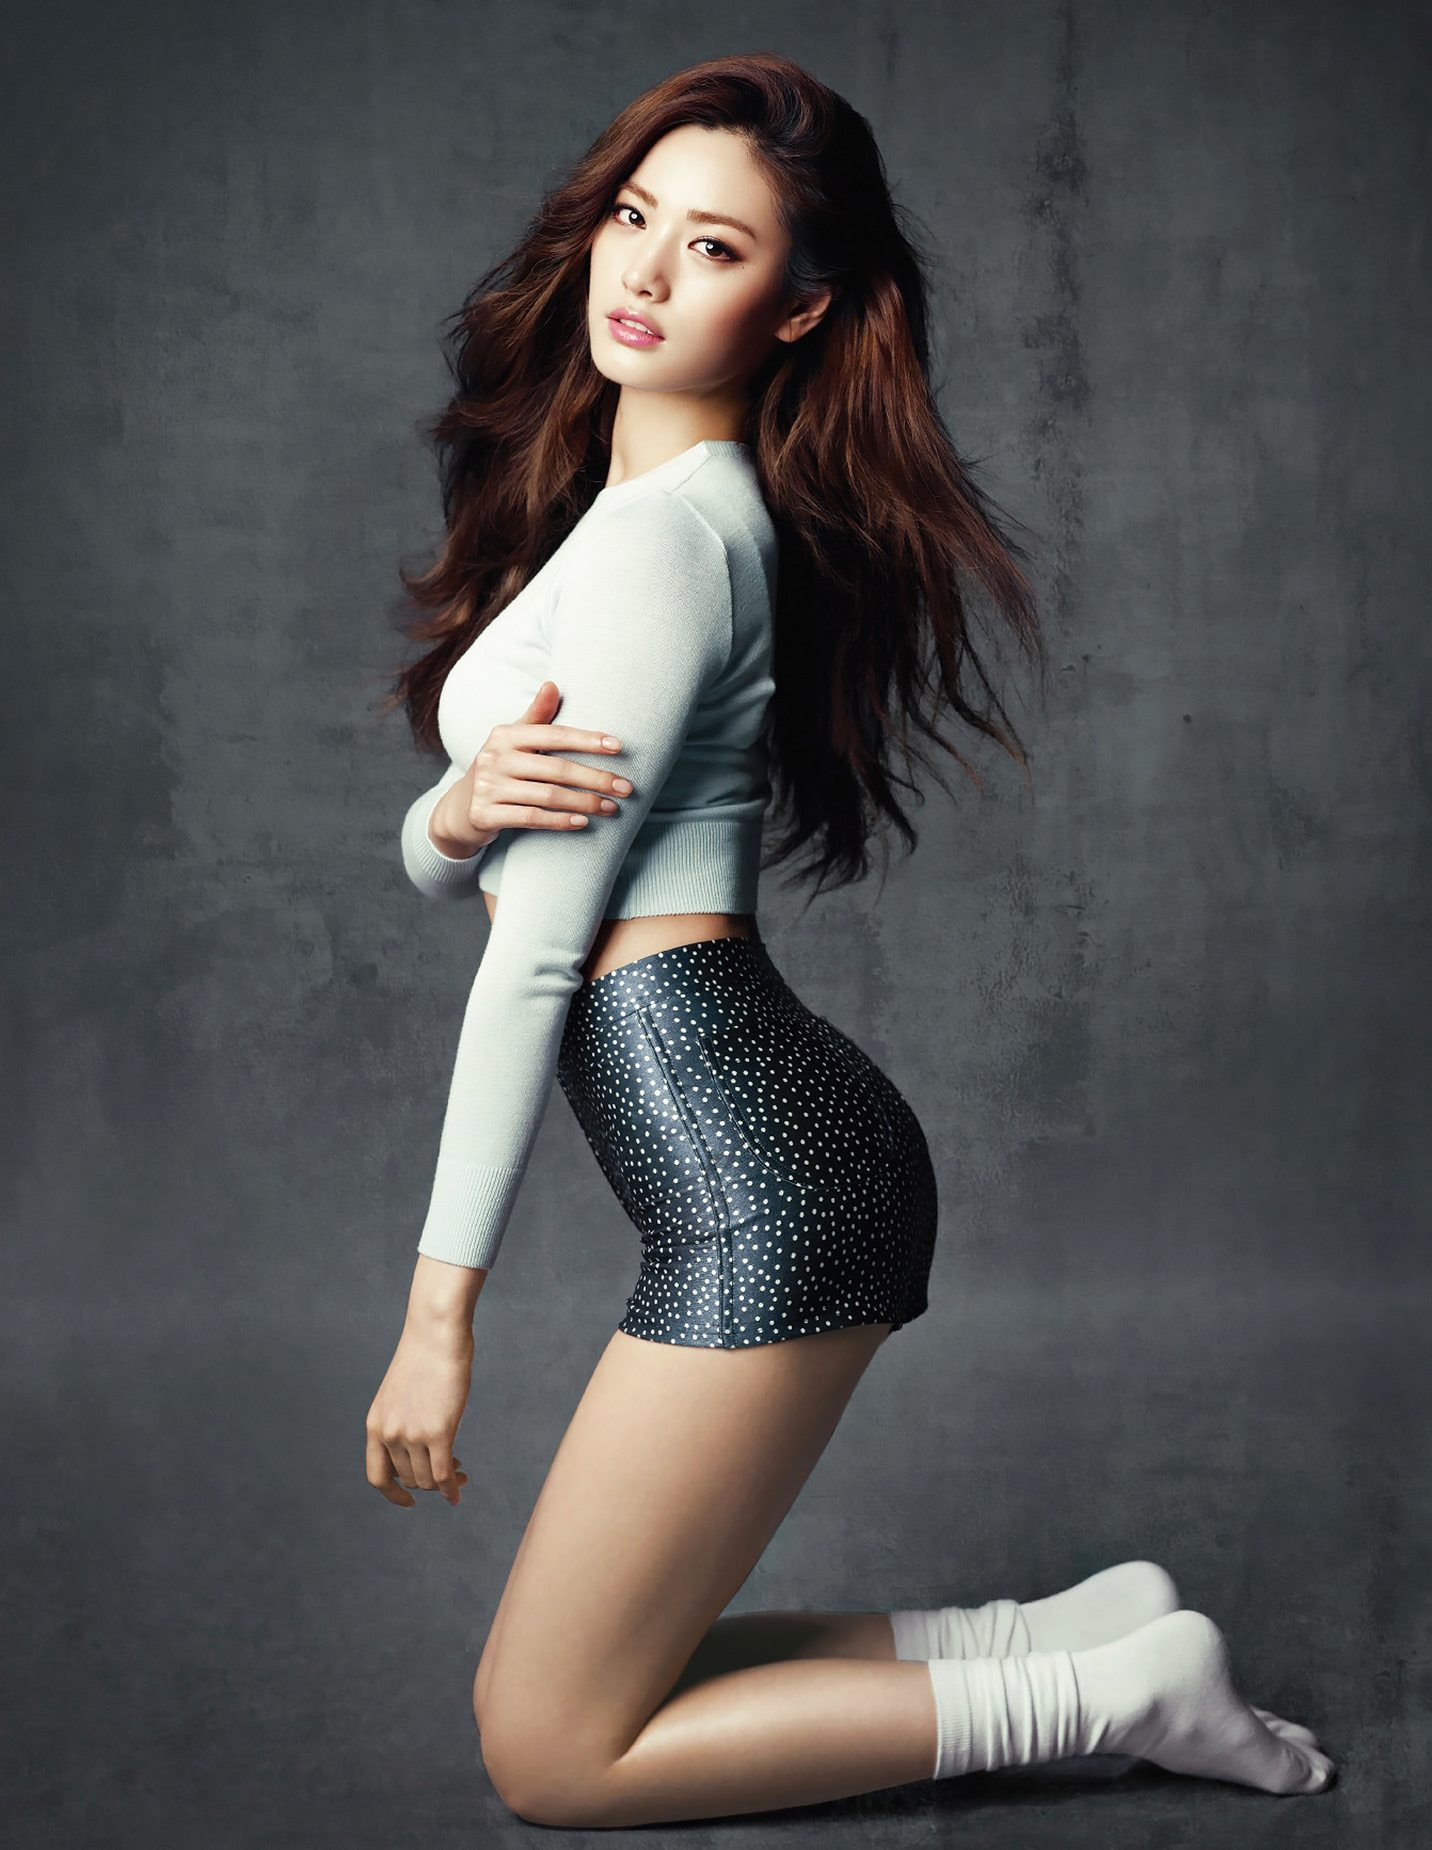 photos-of-korean-hot-models-naked-girl-stay-for-the-dick